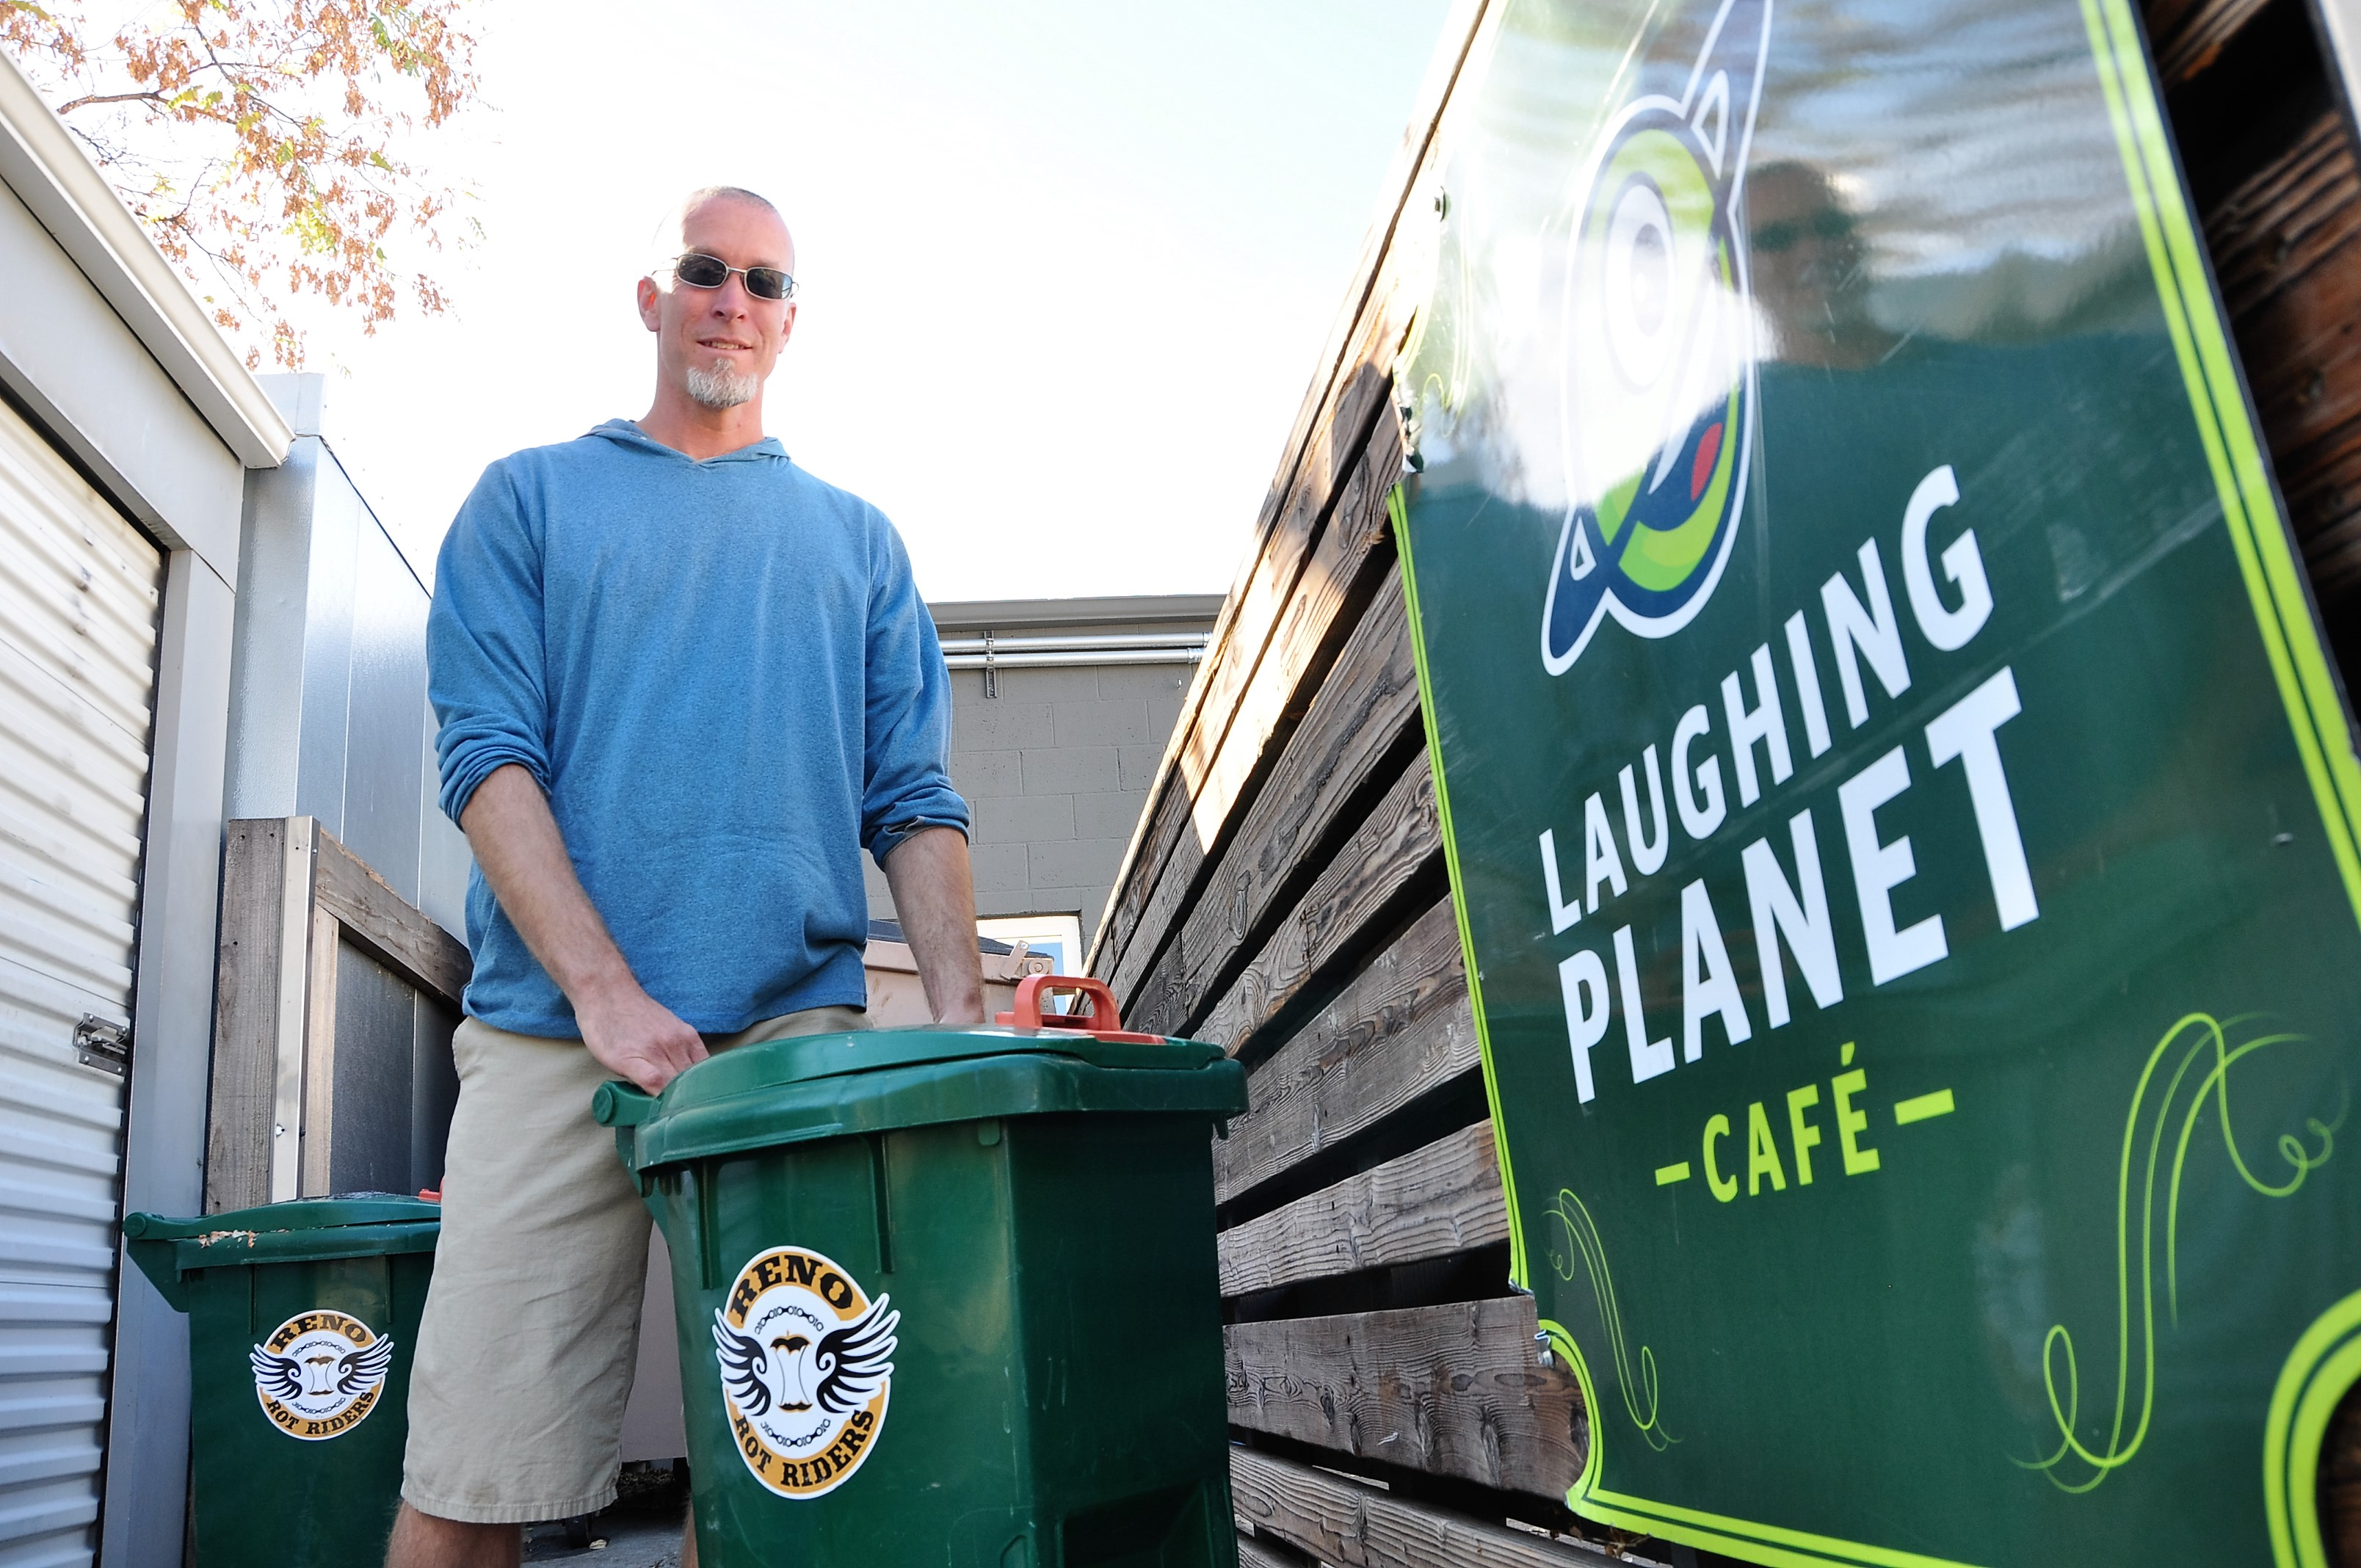 Kyle with bins at Laughing Planet